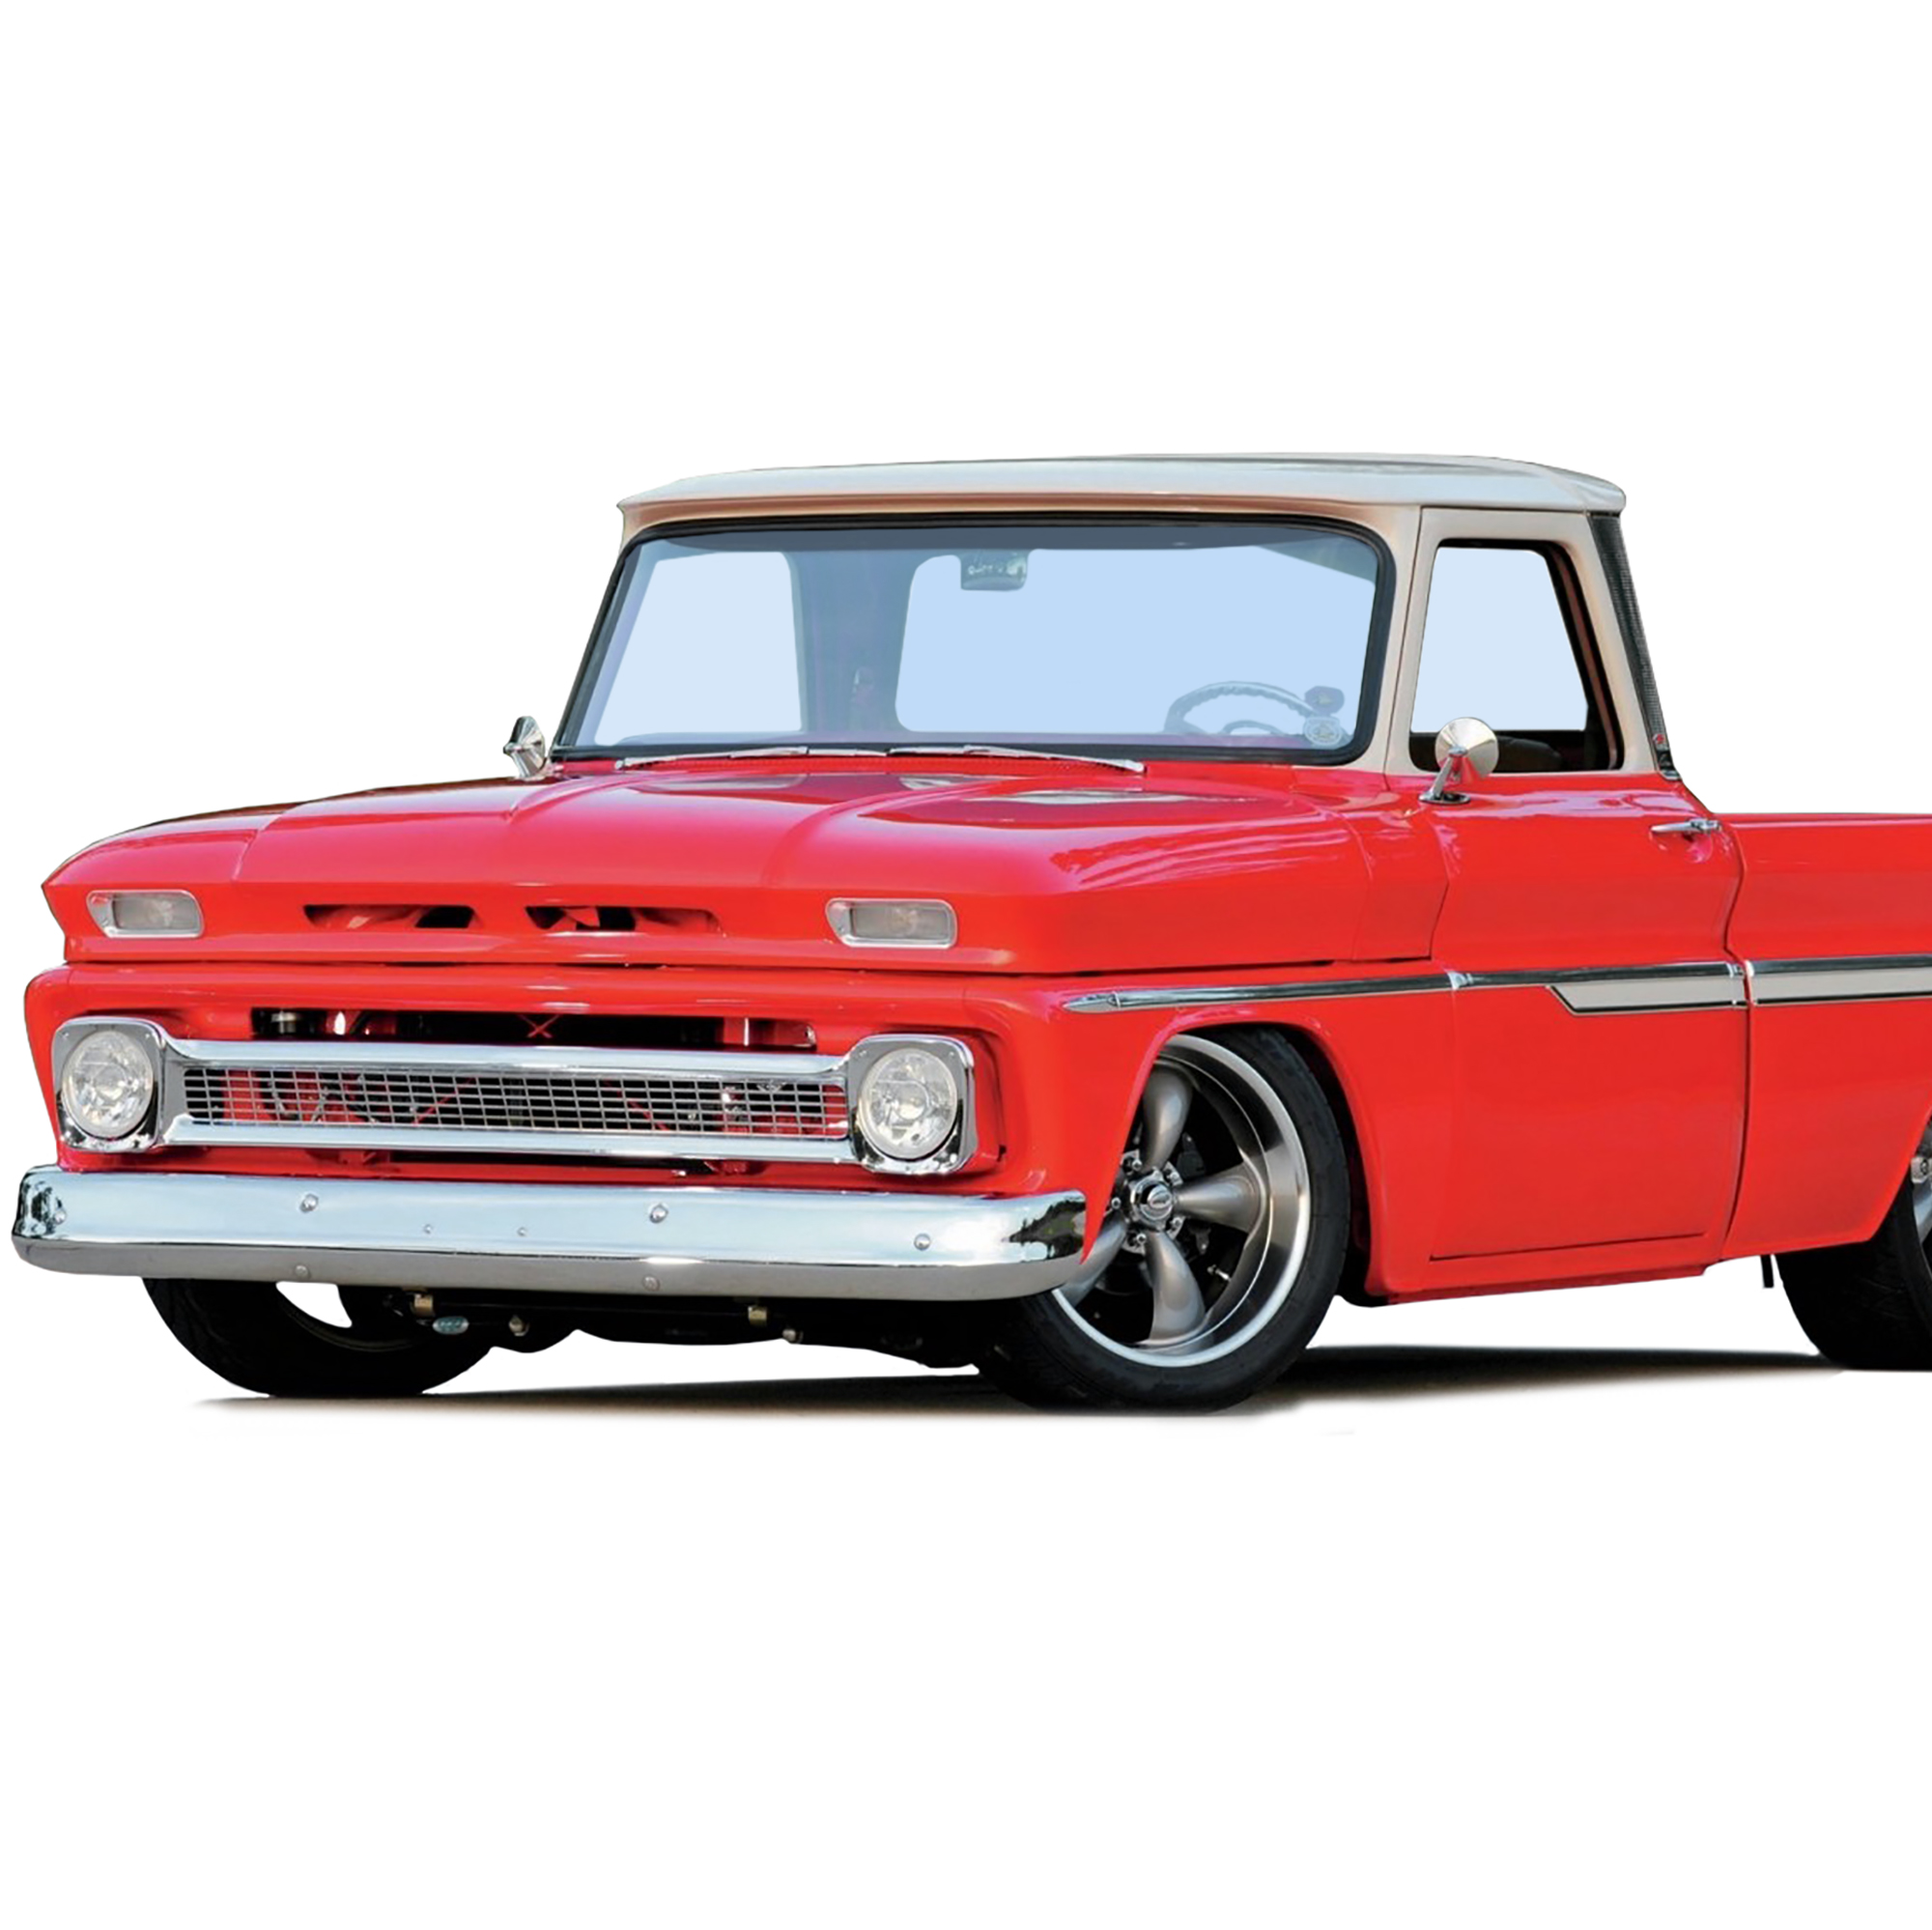 1960 chevy truck engine options